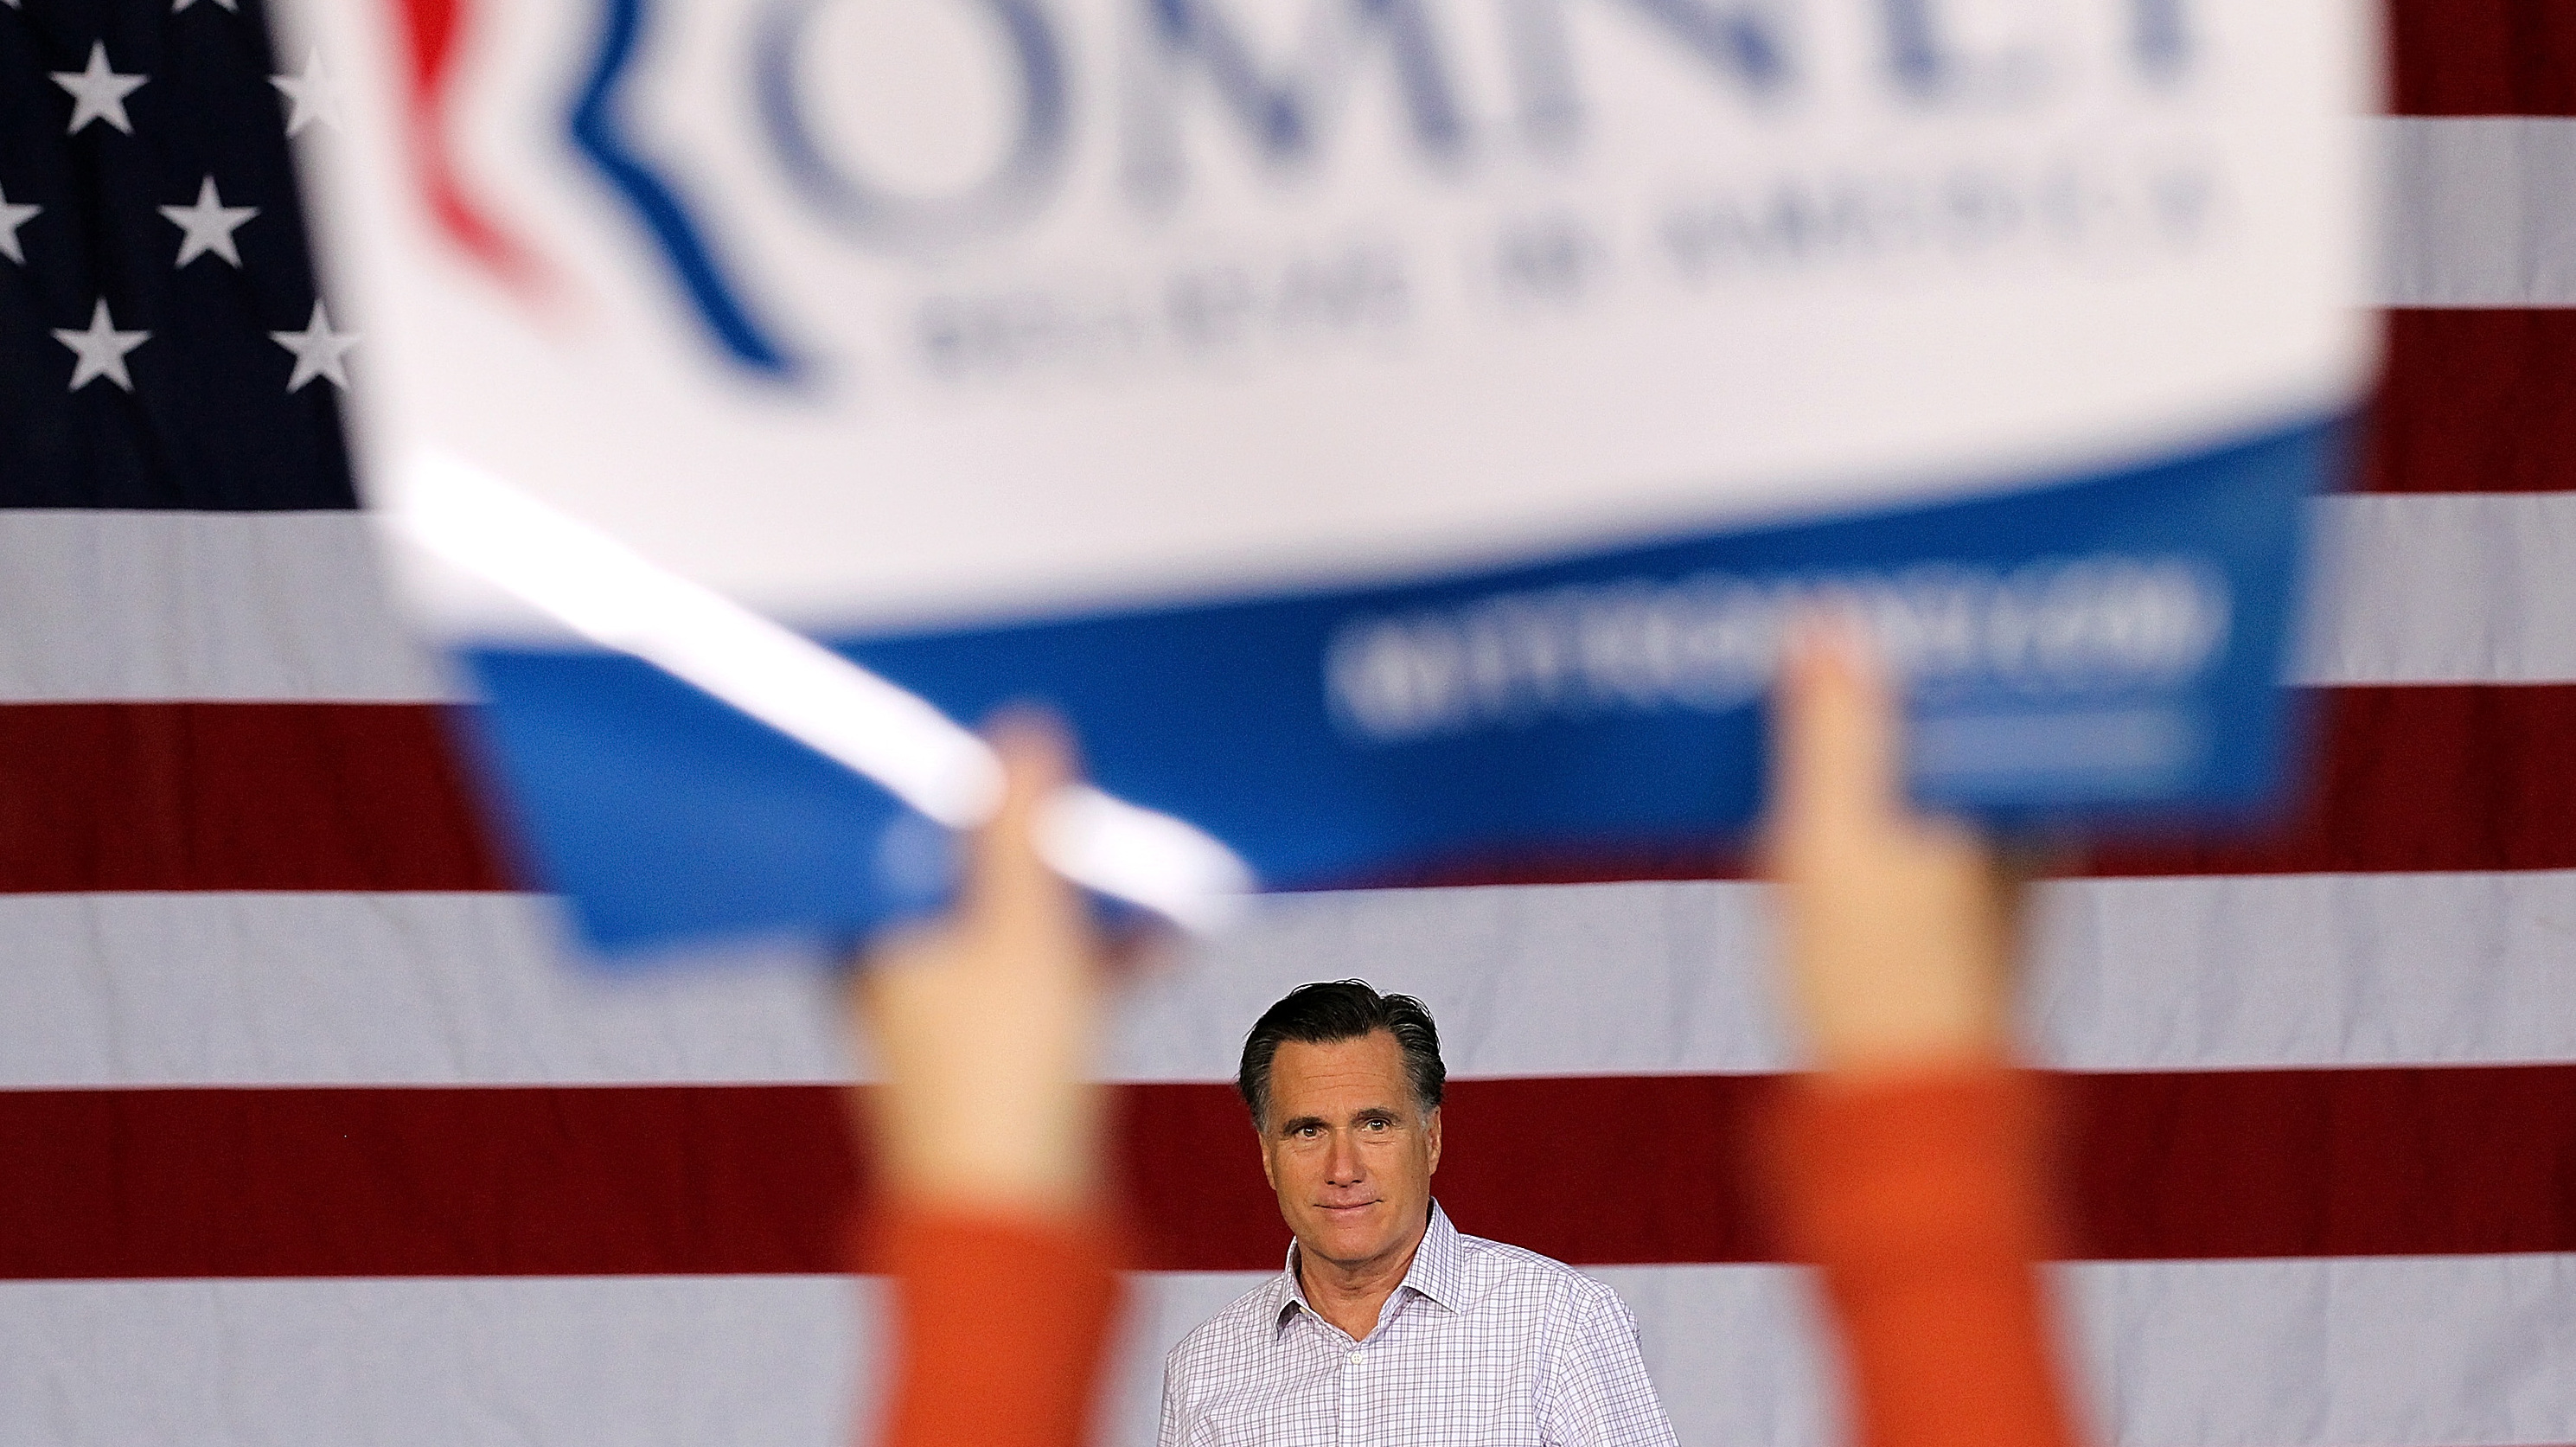 Excerpts from Romney's Liberty address largely ignore religion